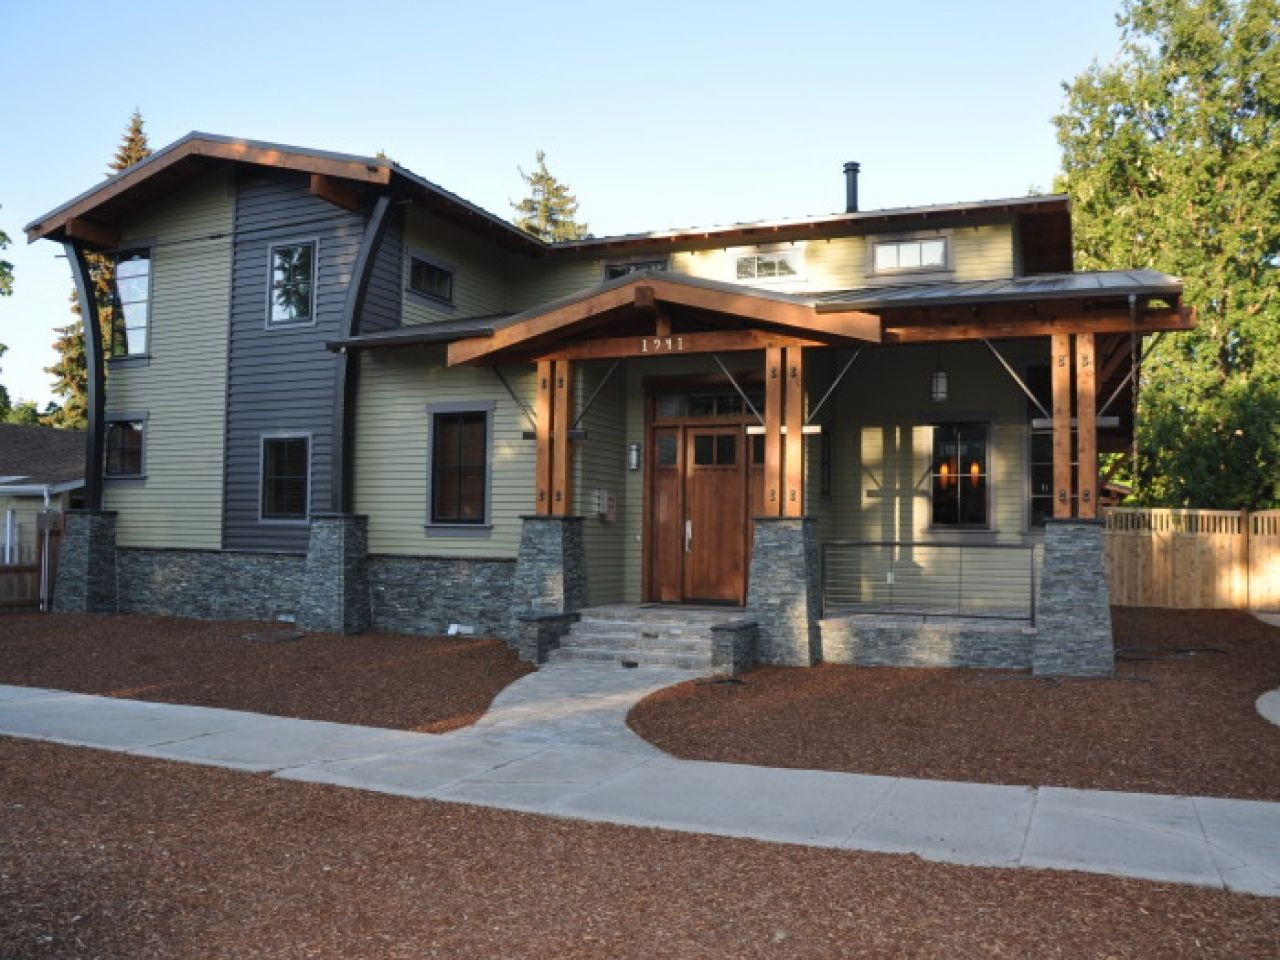 1000 Images About House Exterior Styles On Pinterest Modern Sears